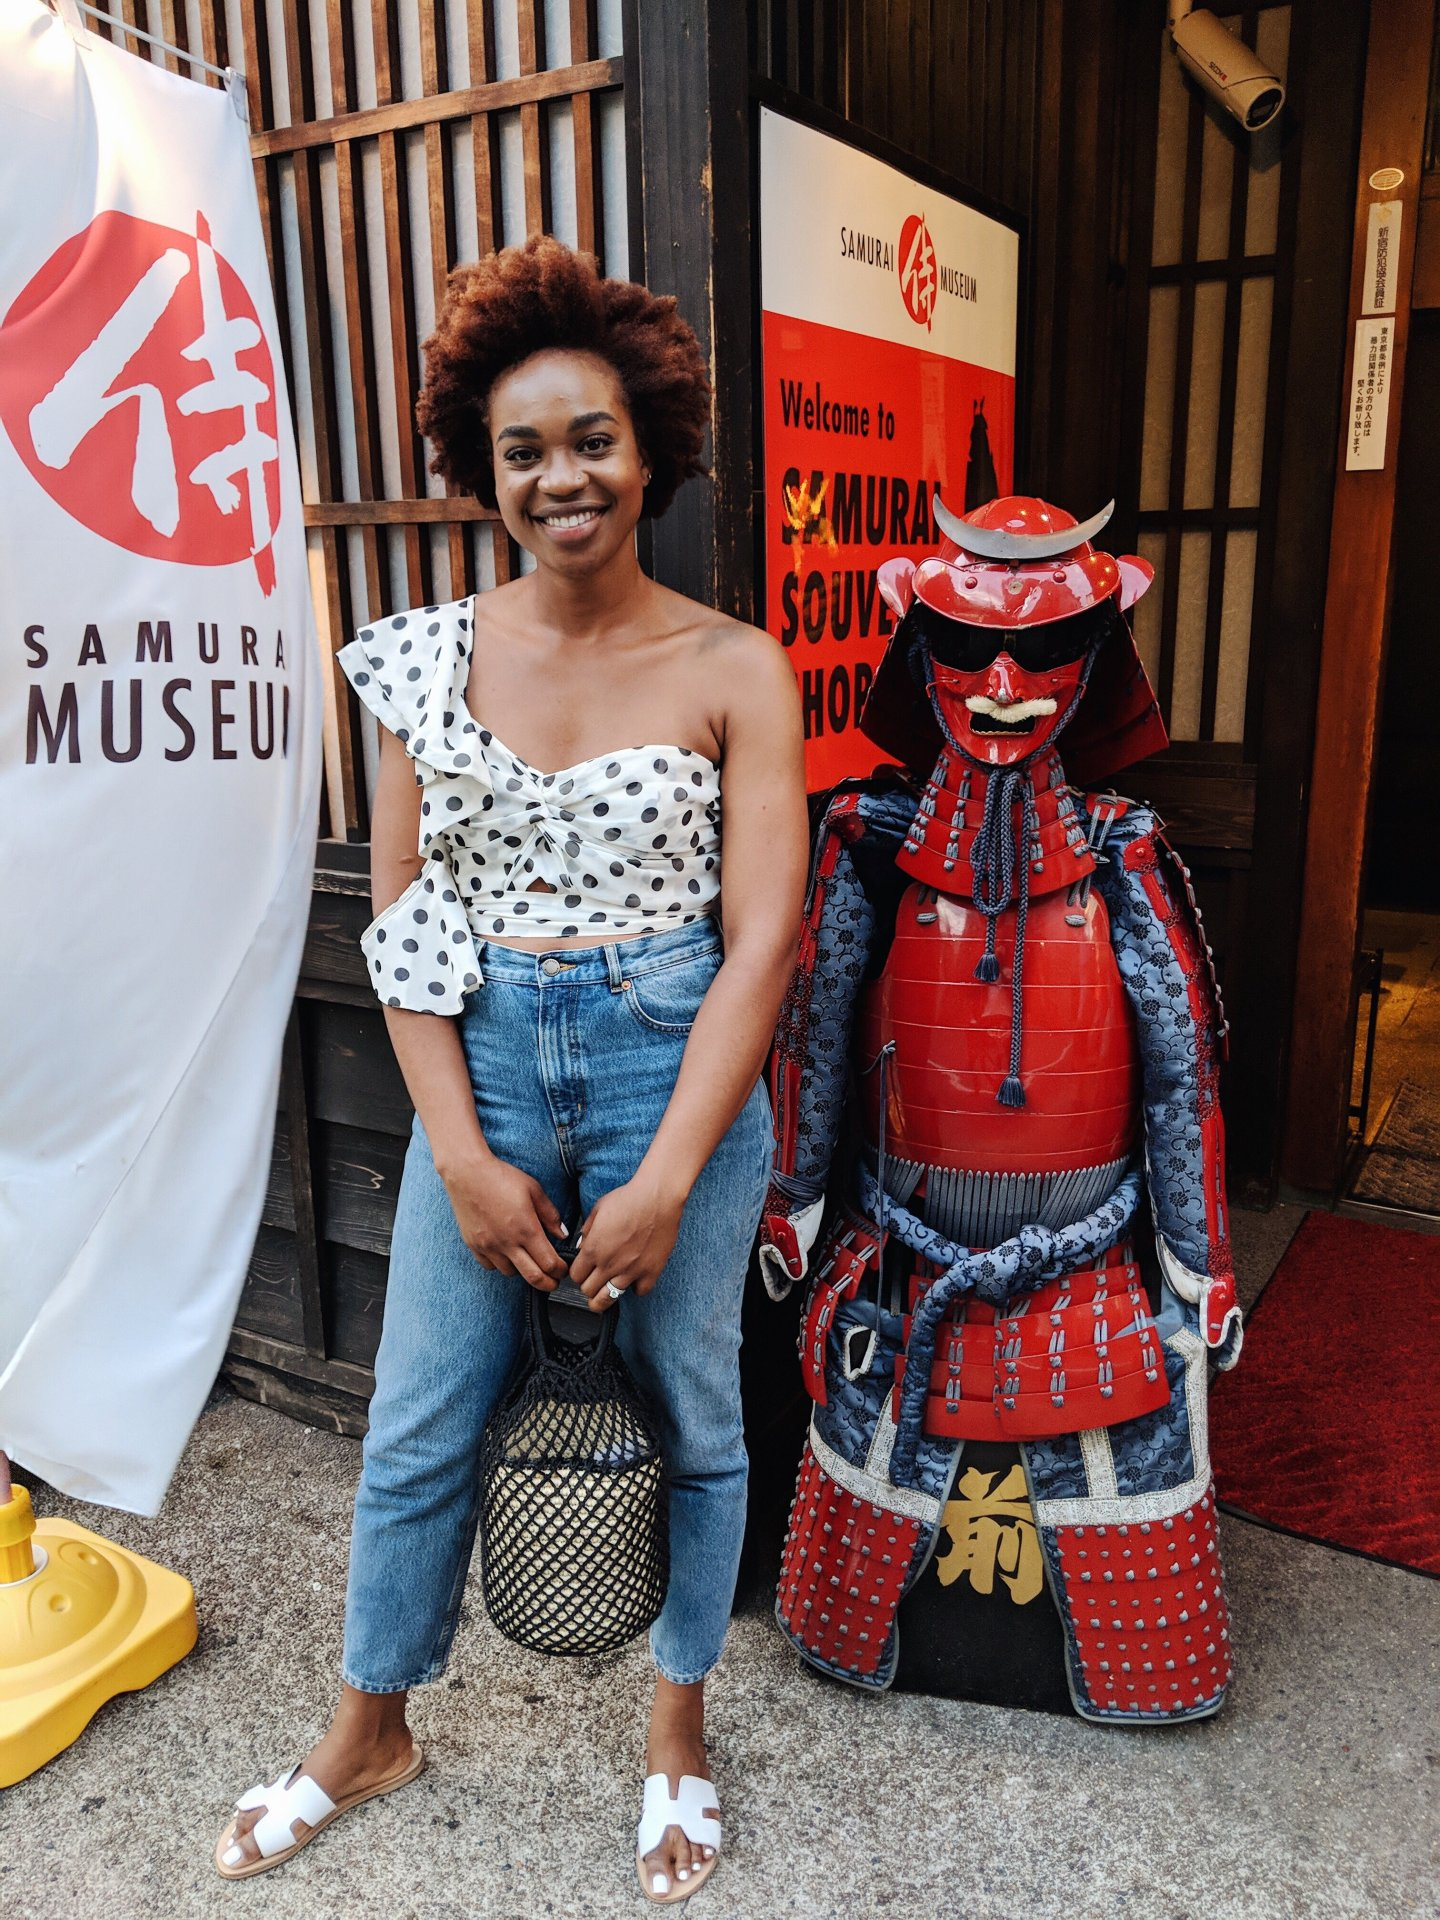 How to See Tokyo in 3 Days - Samurai Museum